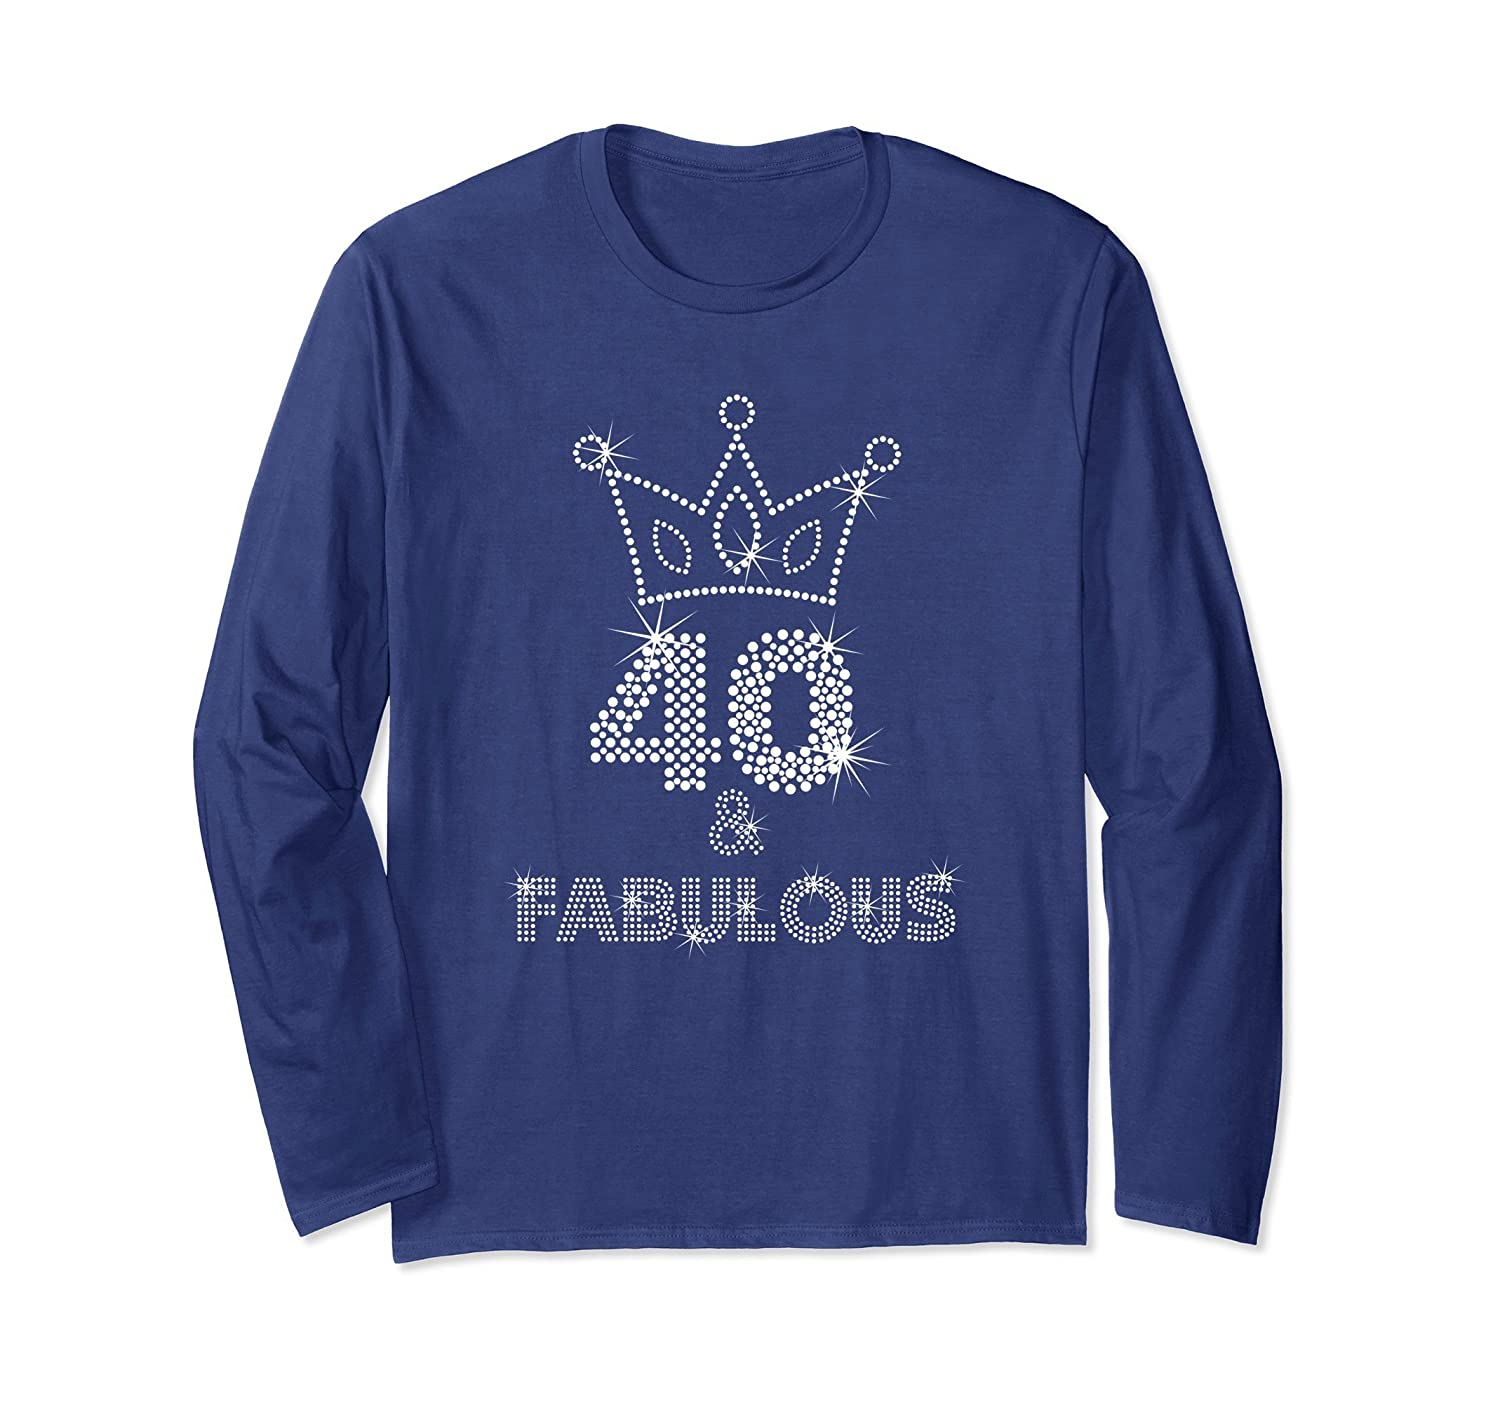 40 And Fabulous 40th Birthday Gift Long Sleeve Tshirt-mt